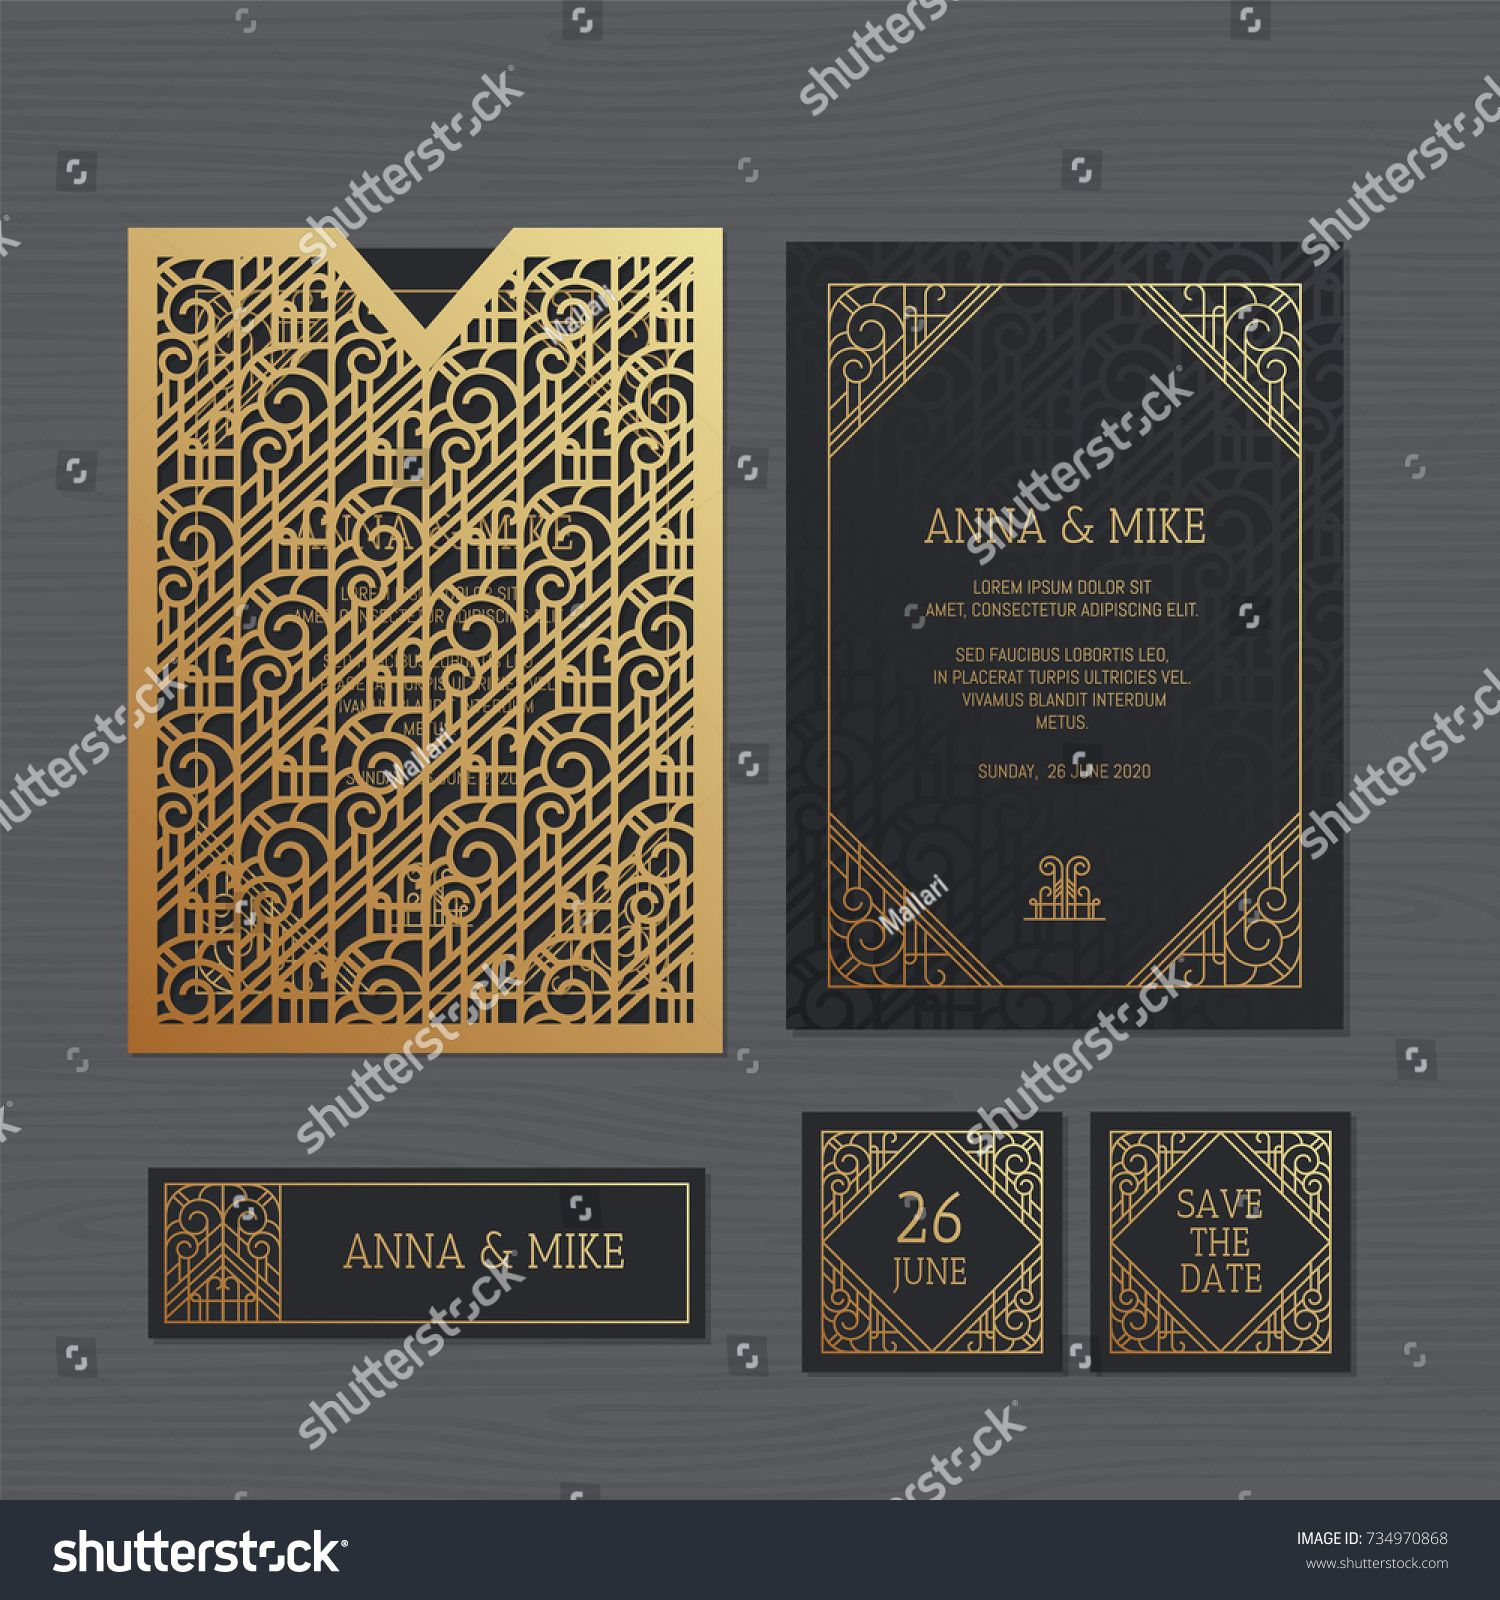 Luxury Wedding Invitation Or Greeting Card With Geometric Ornament Art Deco Style Paper Lace Deco Invitations Art Deco Invitations Luxury Wedding Invitations